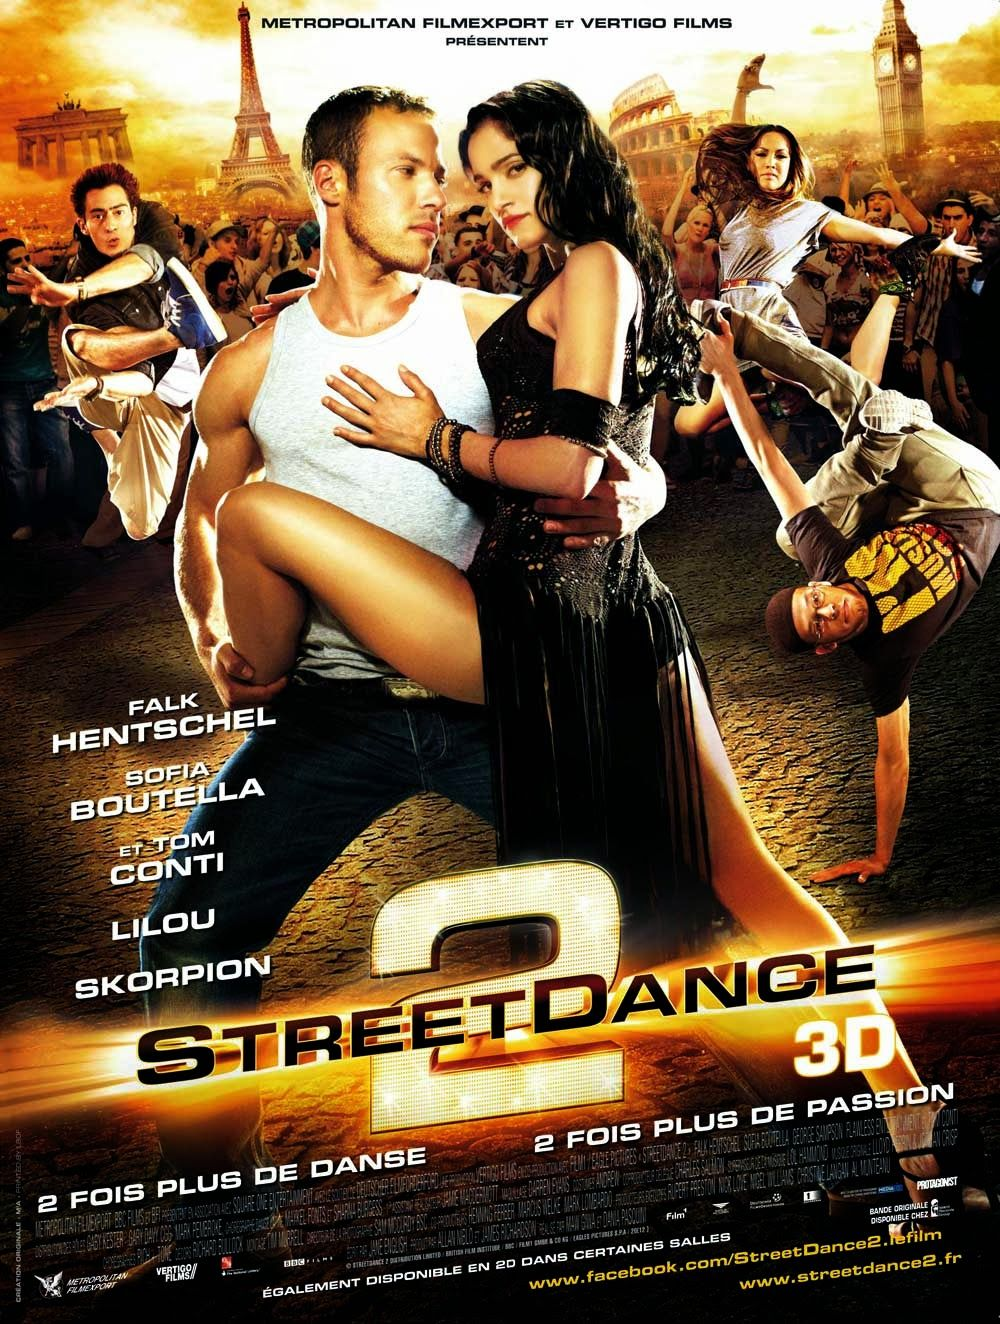 le film steppin 2